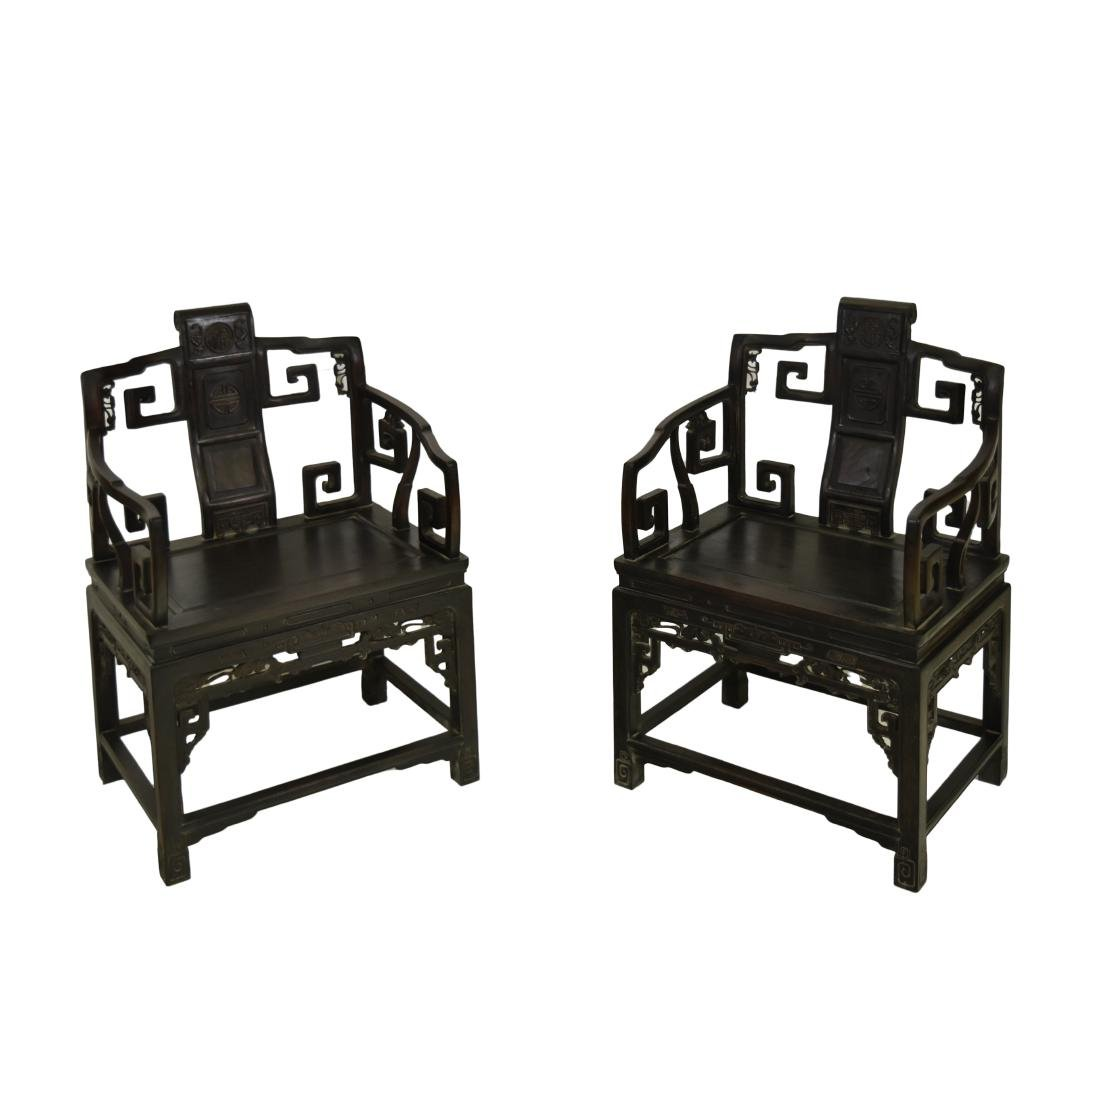 PAIR OF ZITAN LATTICE PANEL MASTER CHAIRS